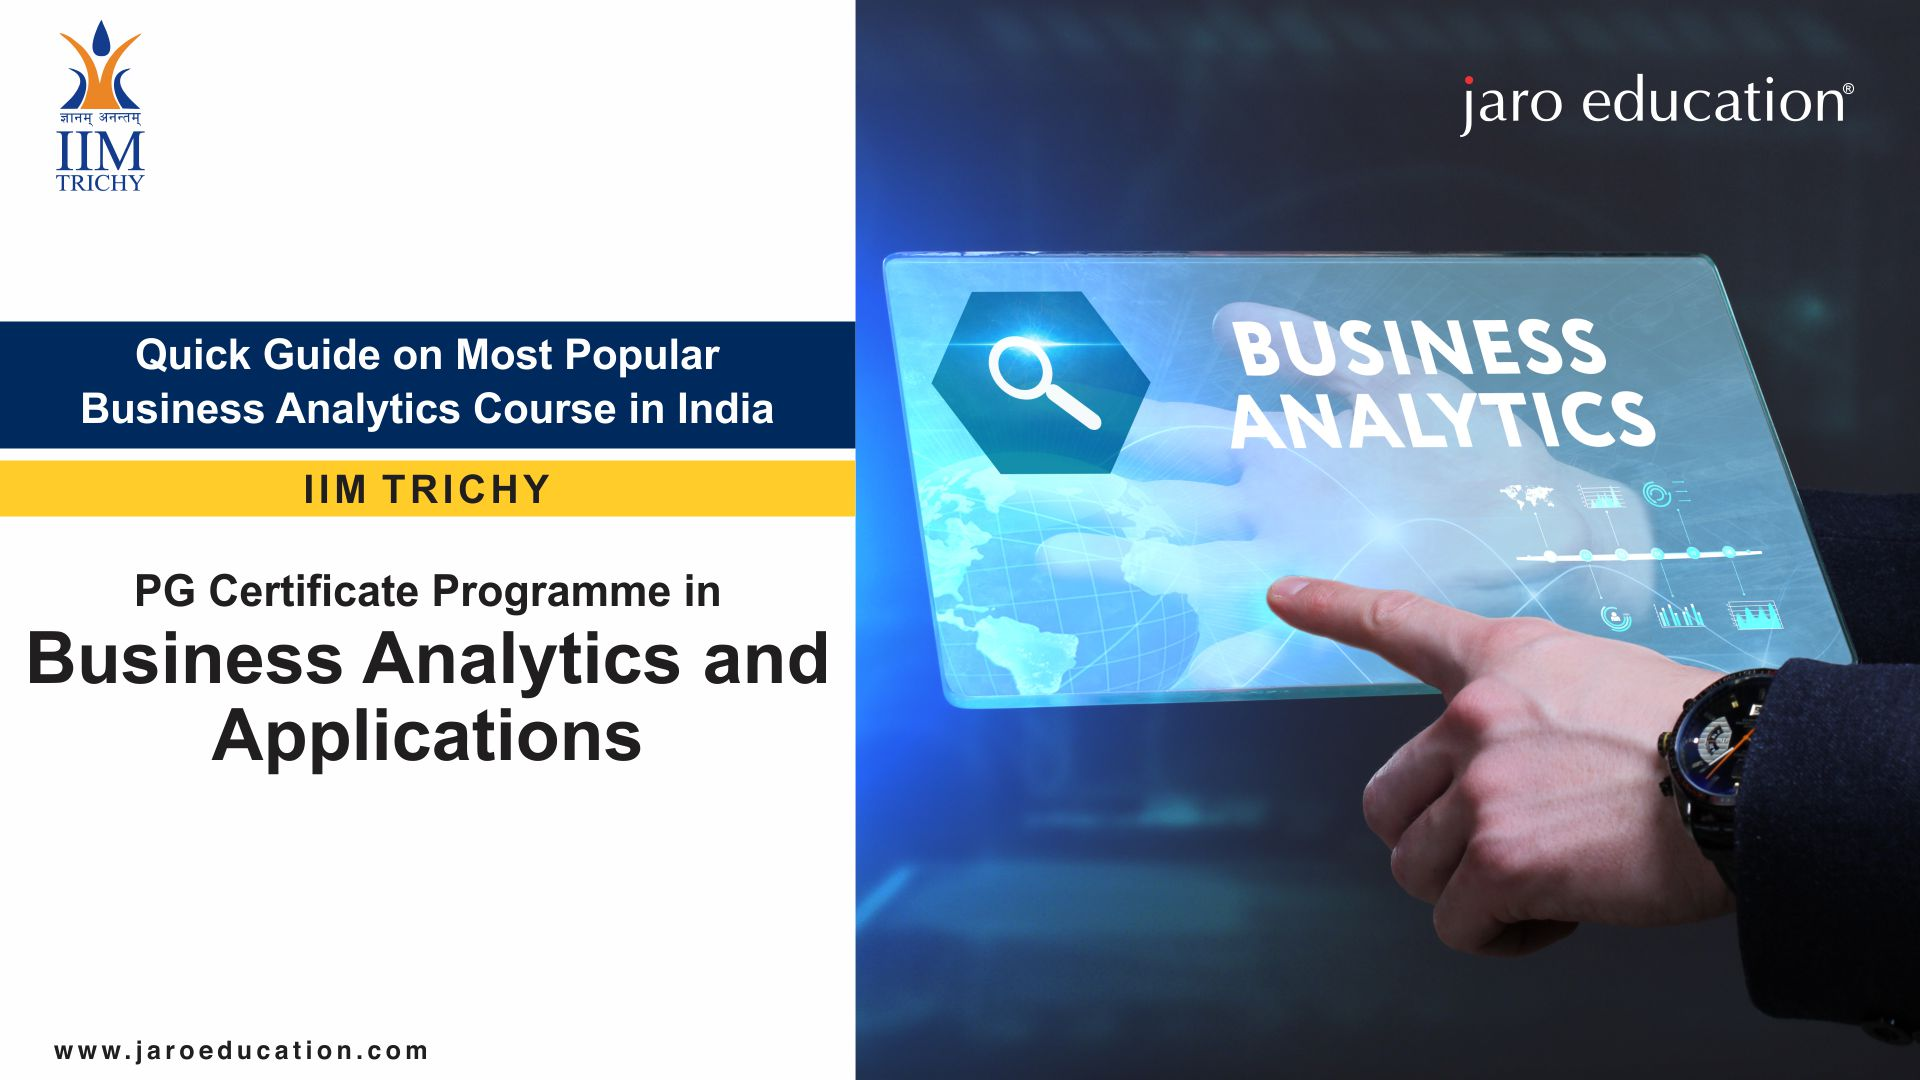 A guide on Business Analytics in India